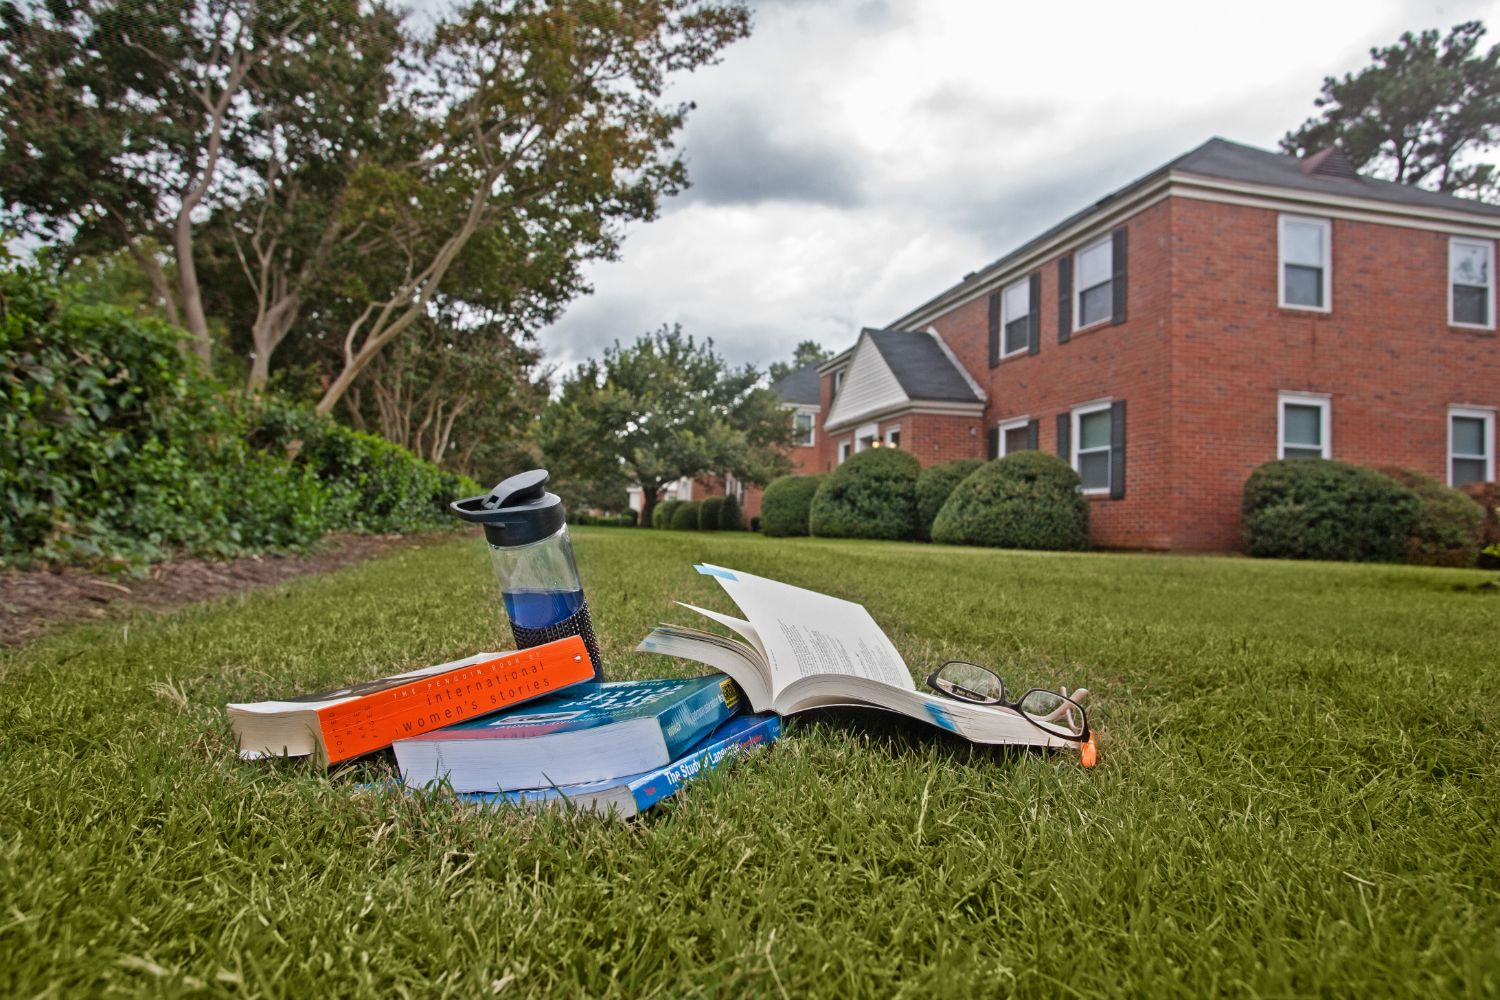 Exterior building and student books on lawn